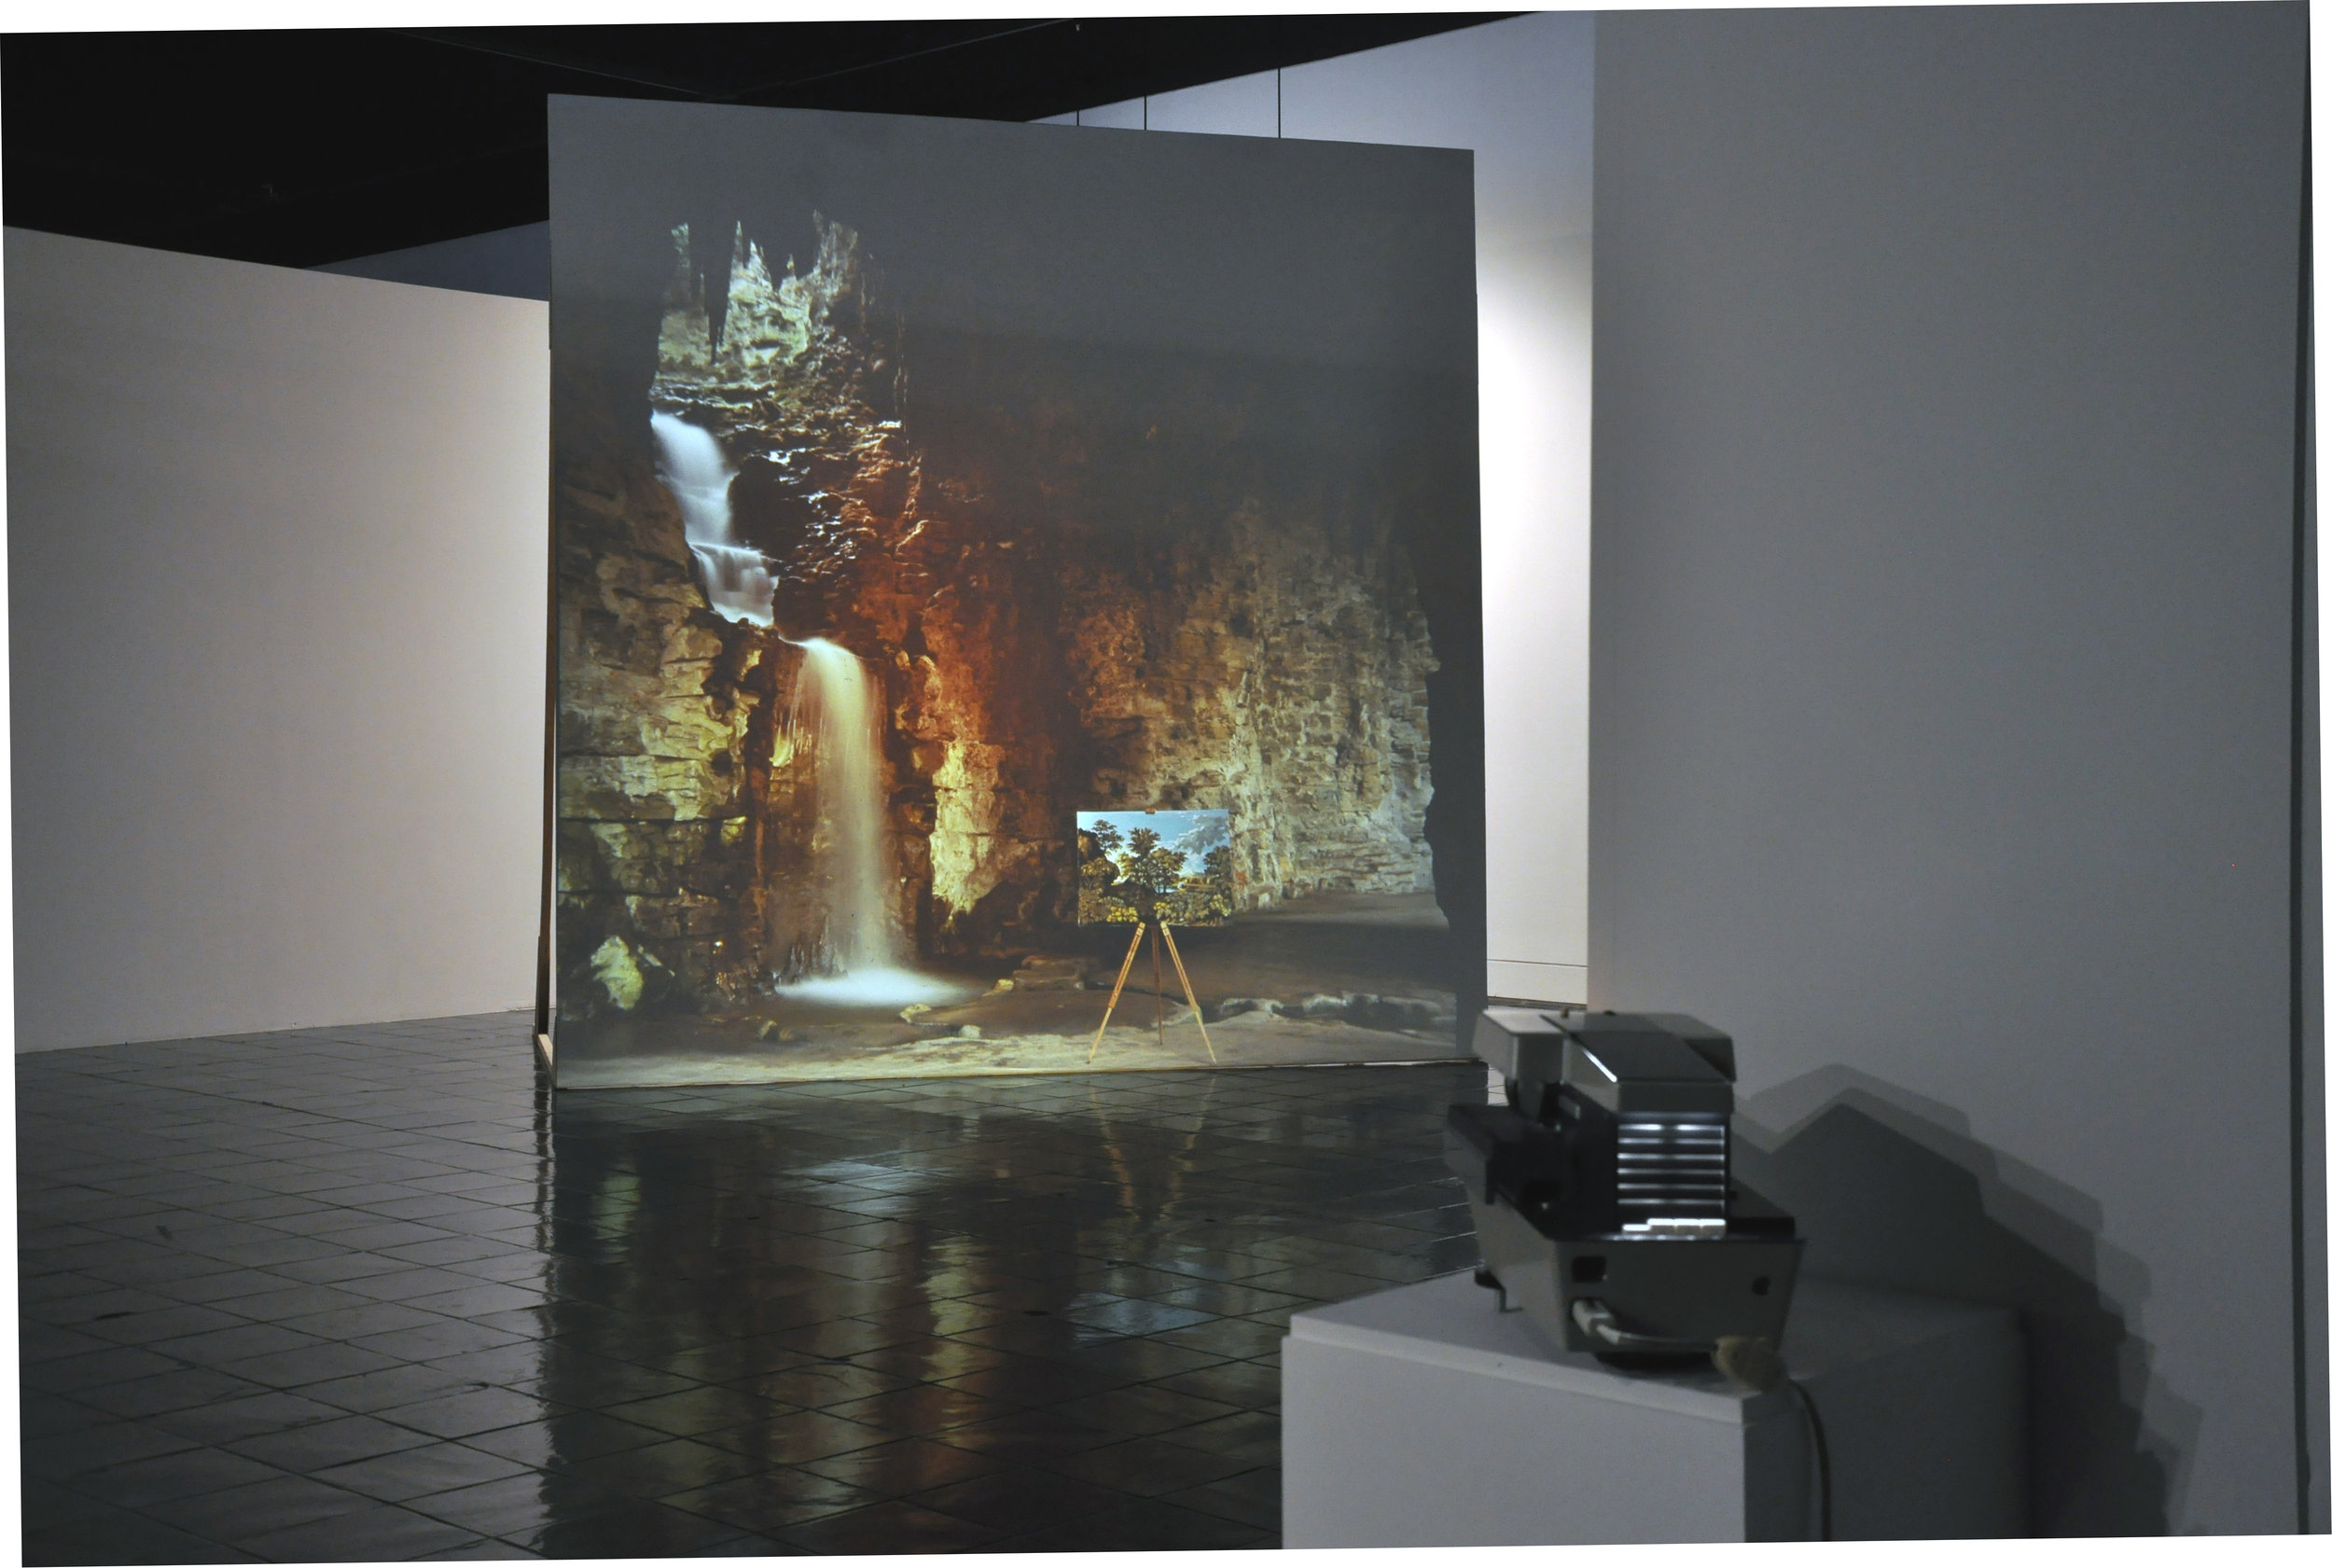 Matts Leiderstam, Paris 1999-03-15, Returned, Parc des Buttes-Chaumont made after Nicolas Poussin's Spring or The Earthly Paradise, 1660-64, Rome , 2000-01.Installation with slide projection and wooden bench.